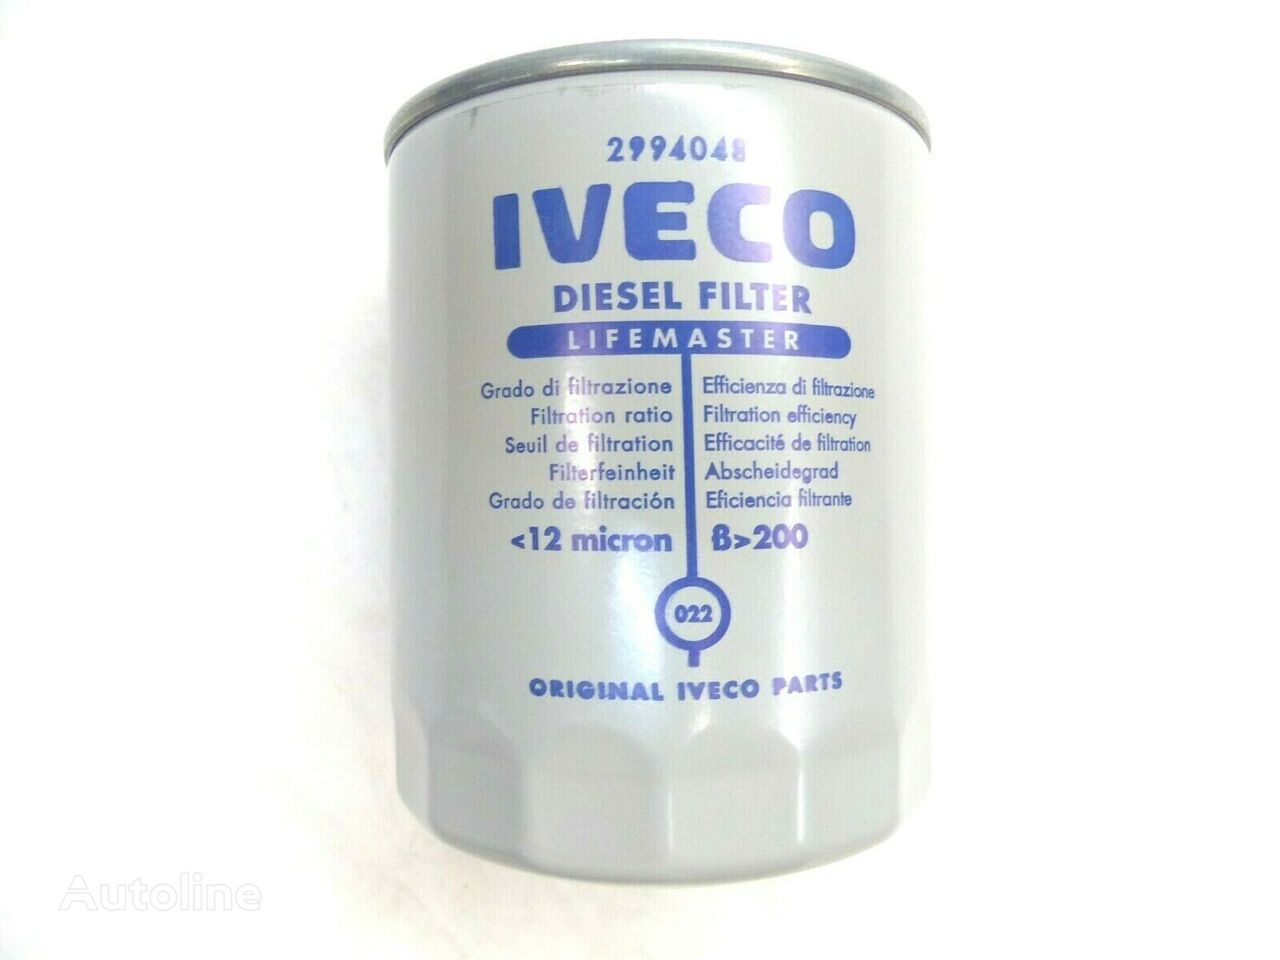 new IVECO fuel filter for IVECO IRISBUS  bus